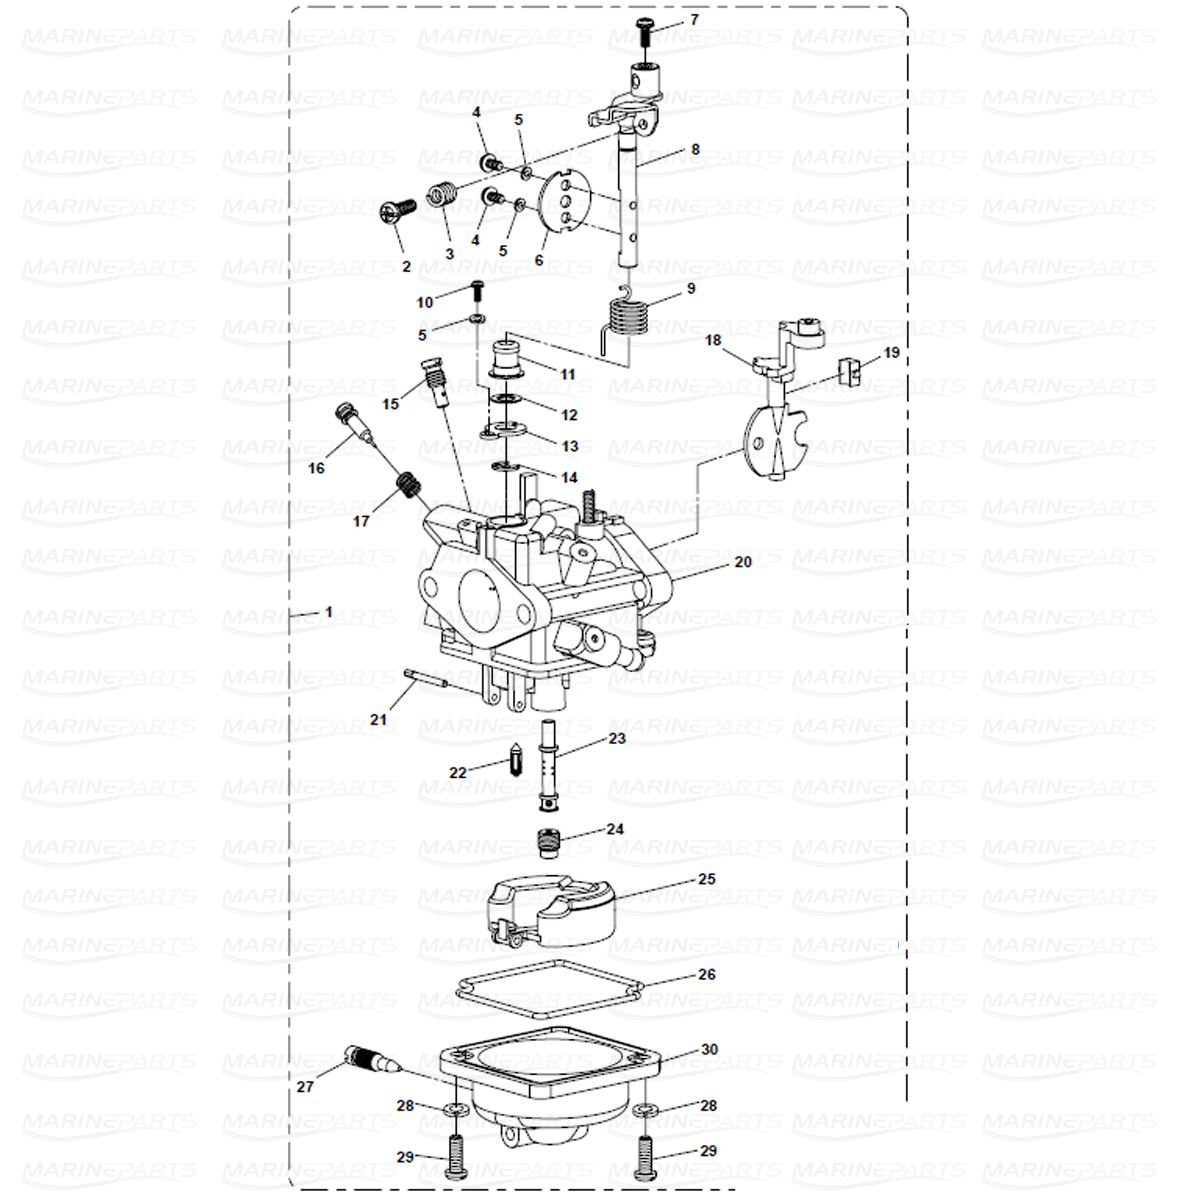 Exploded view carburetor, Parsun 6 hp